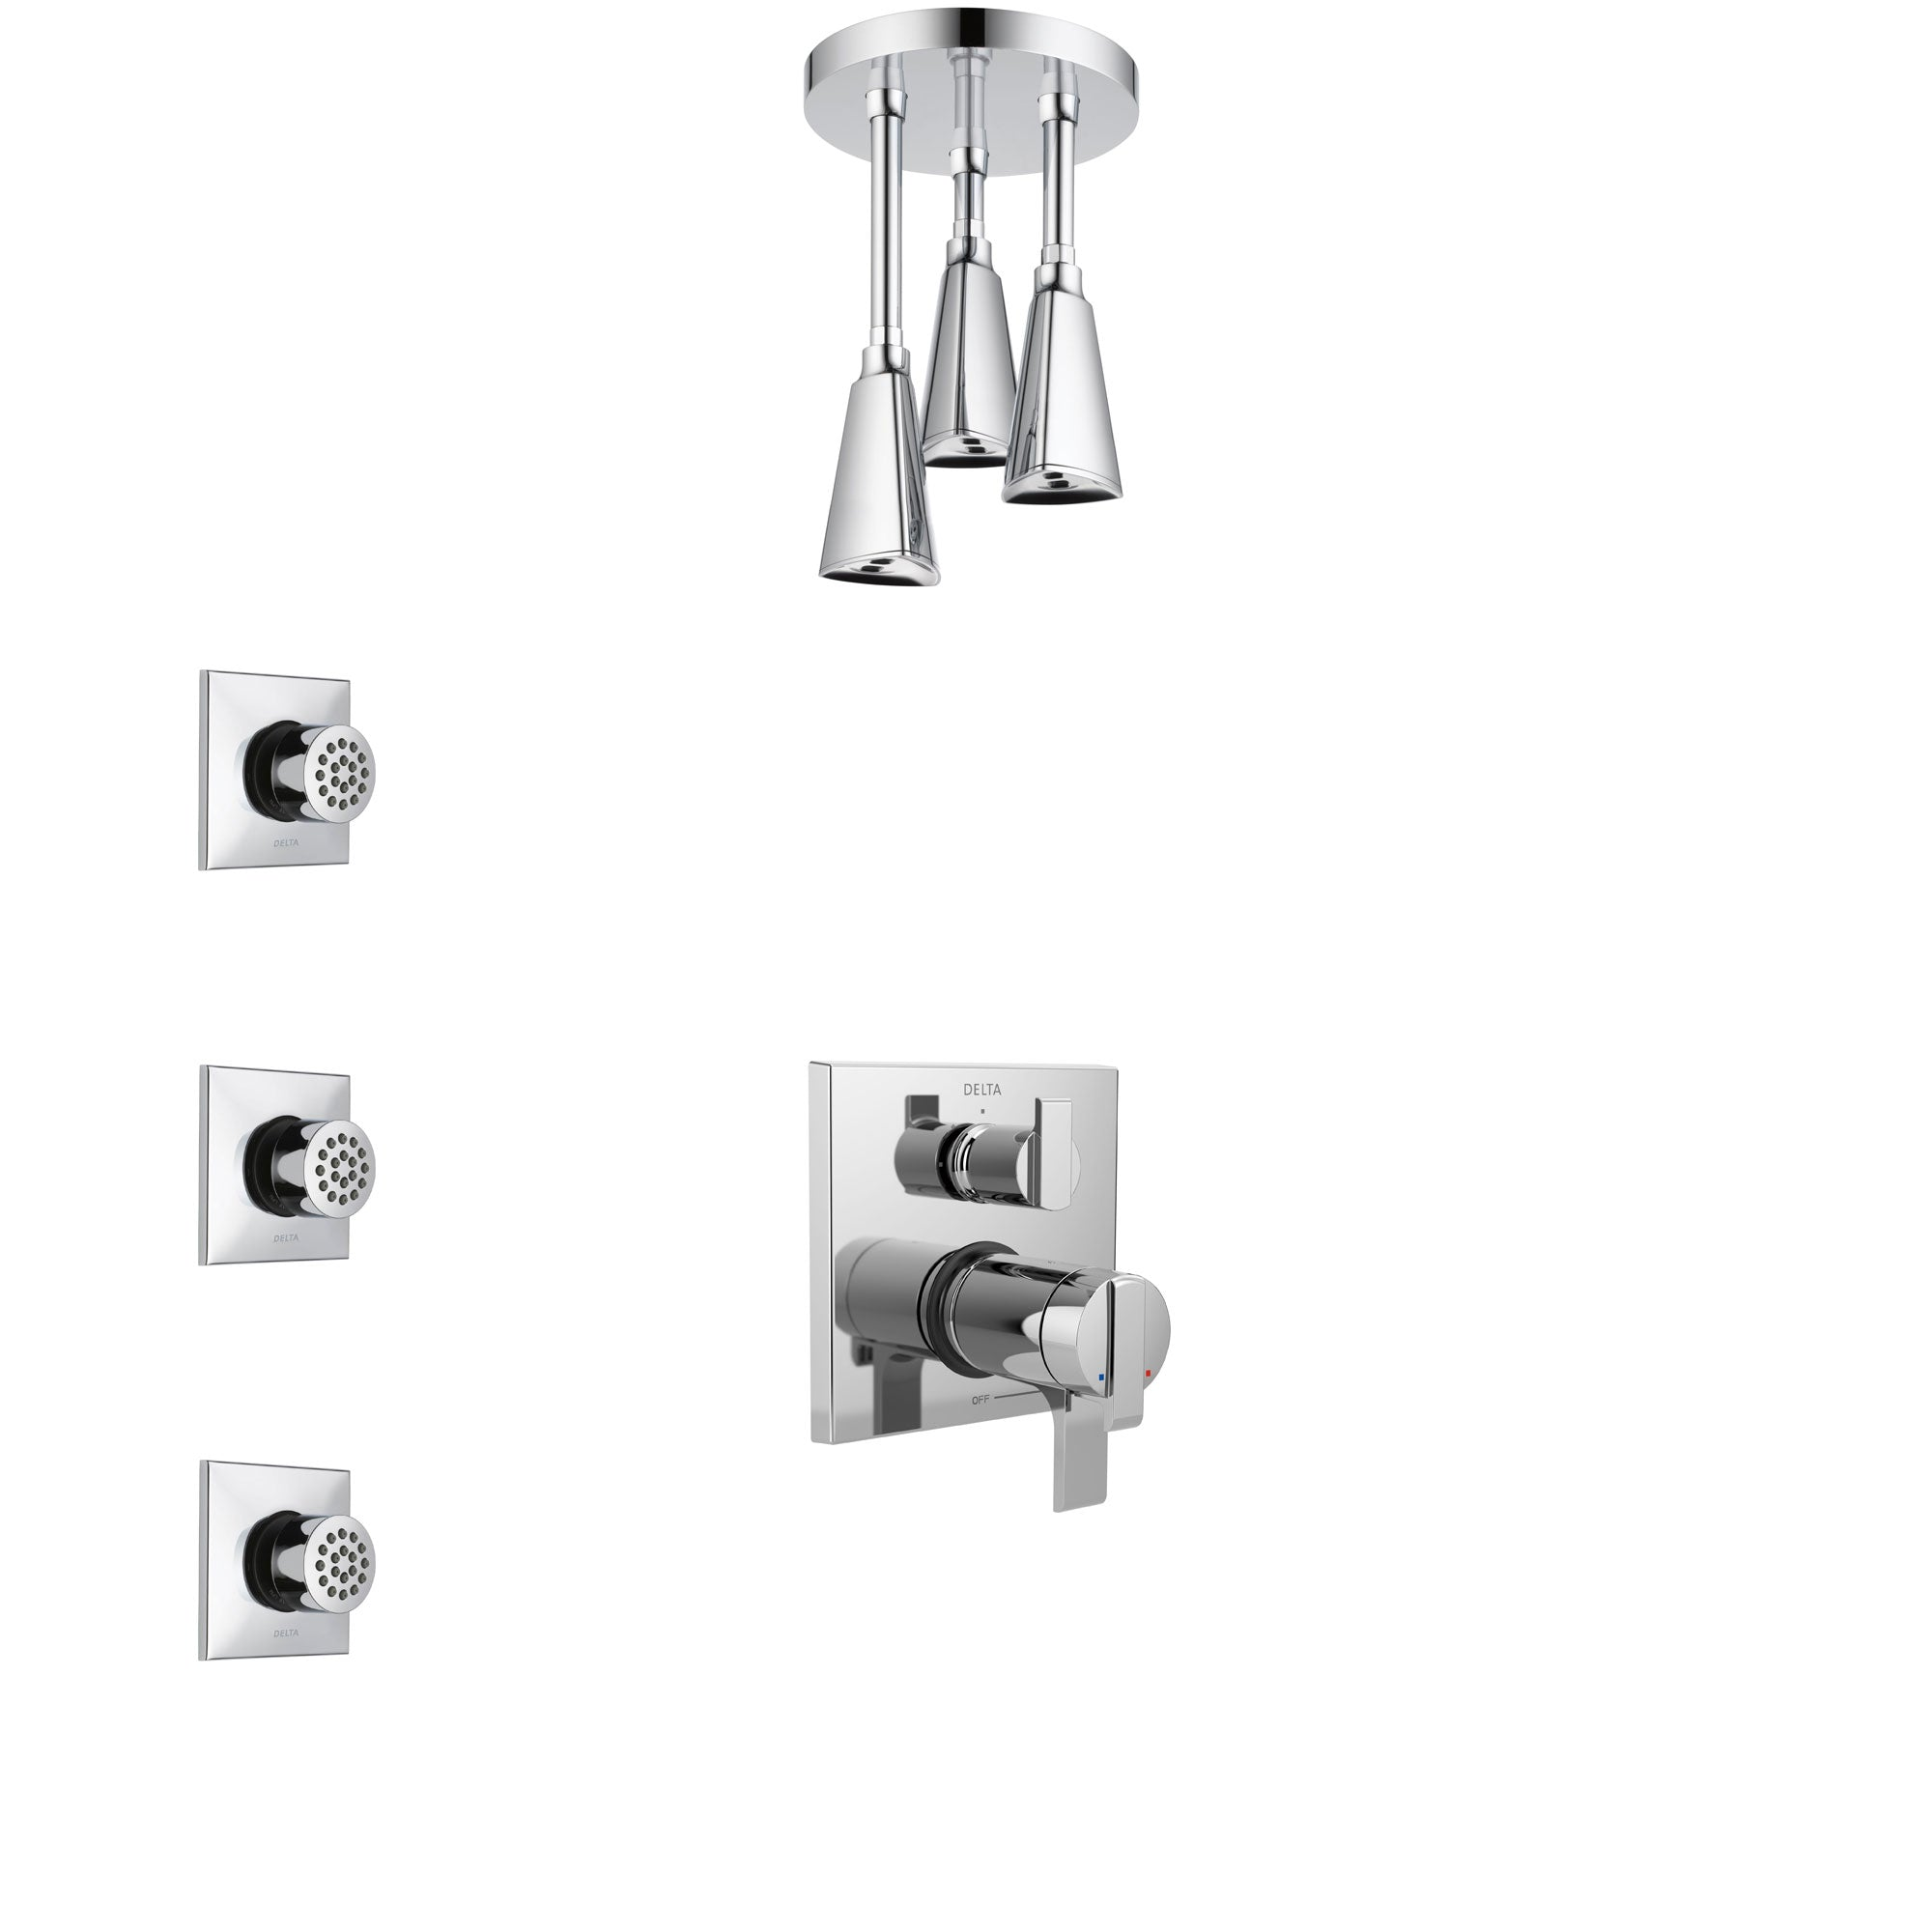 Delta Ara Chrome Shower System with Dual Thermostatic Control Handle, Integrated Diverter, Ceiling Mount Showerhead, and 3 Body Sprays SS27T8674